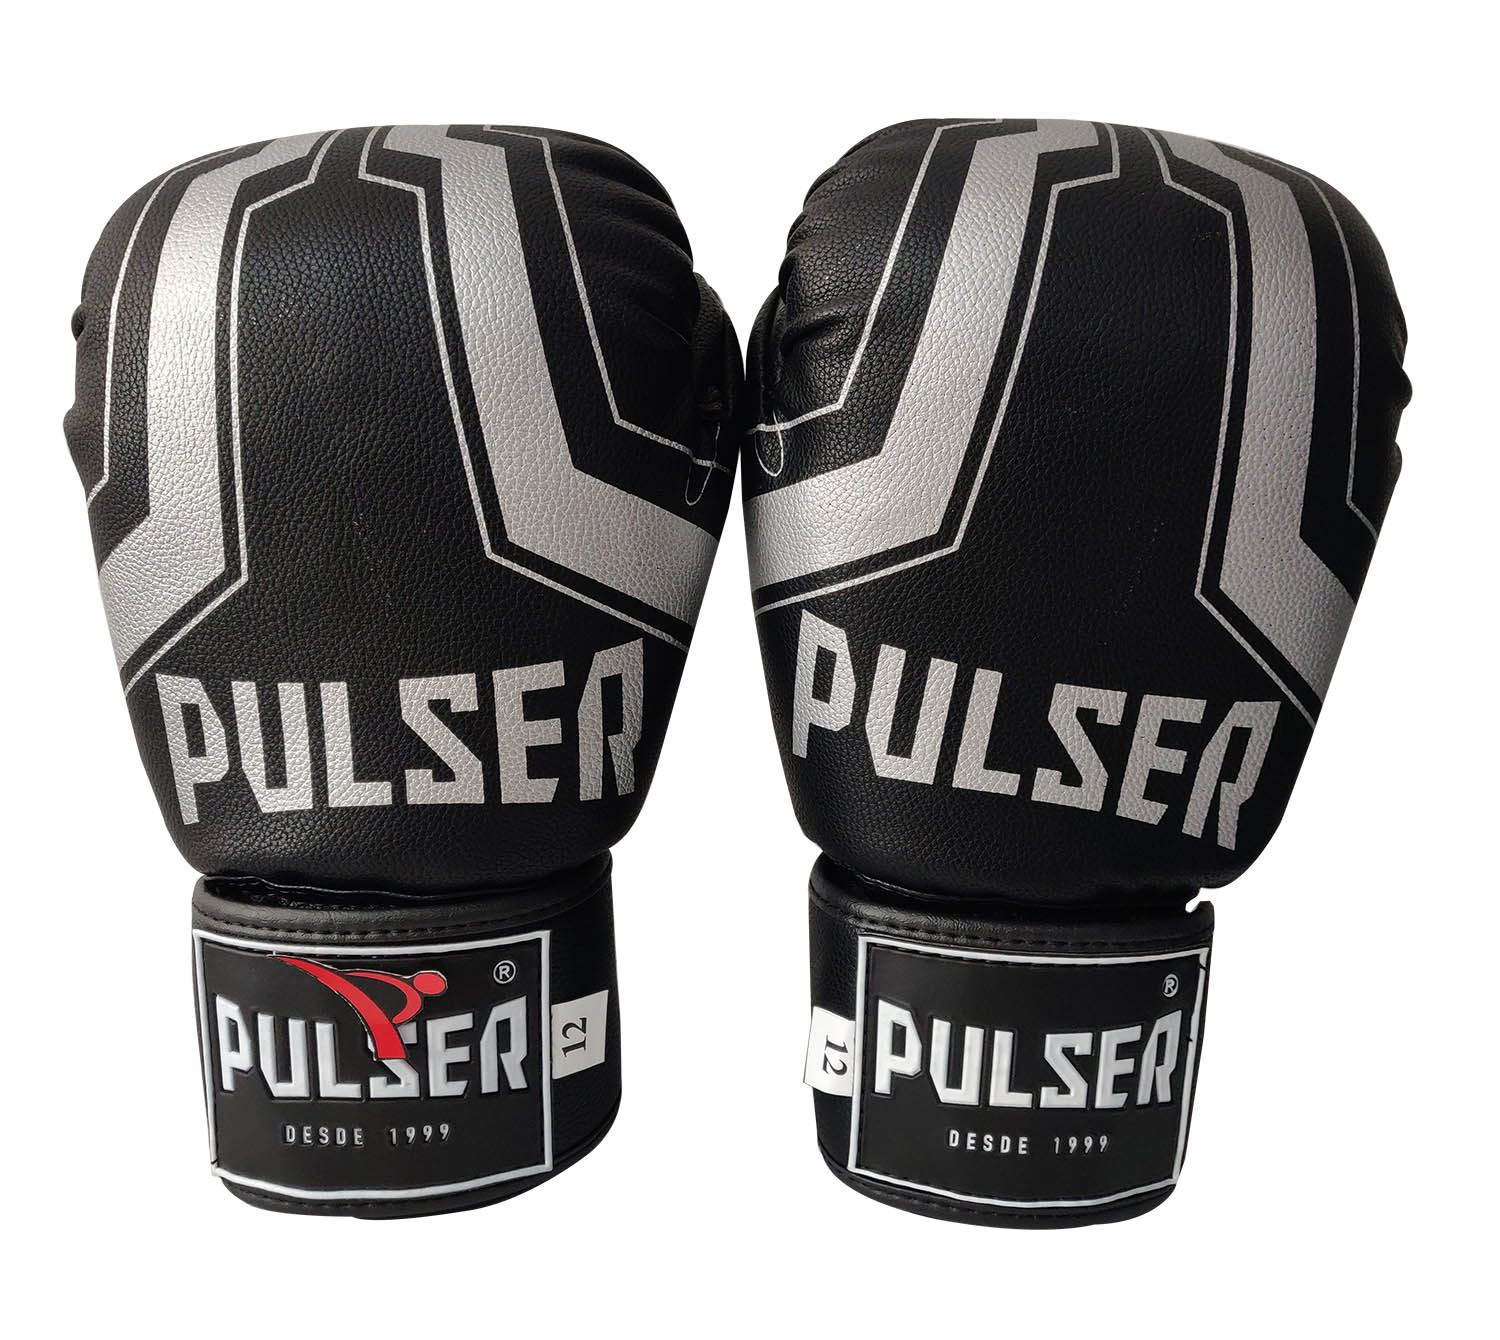 Kit de Muay Thai / Kickboxing 14oz - Iron Preto - Pulser  - PRALUTA SHOP